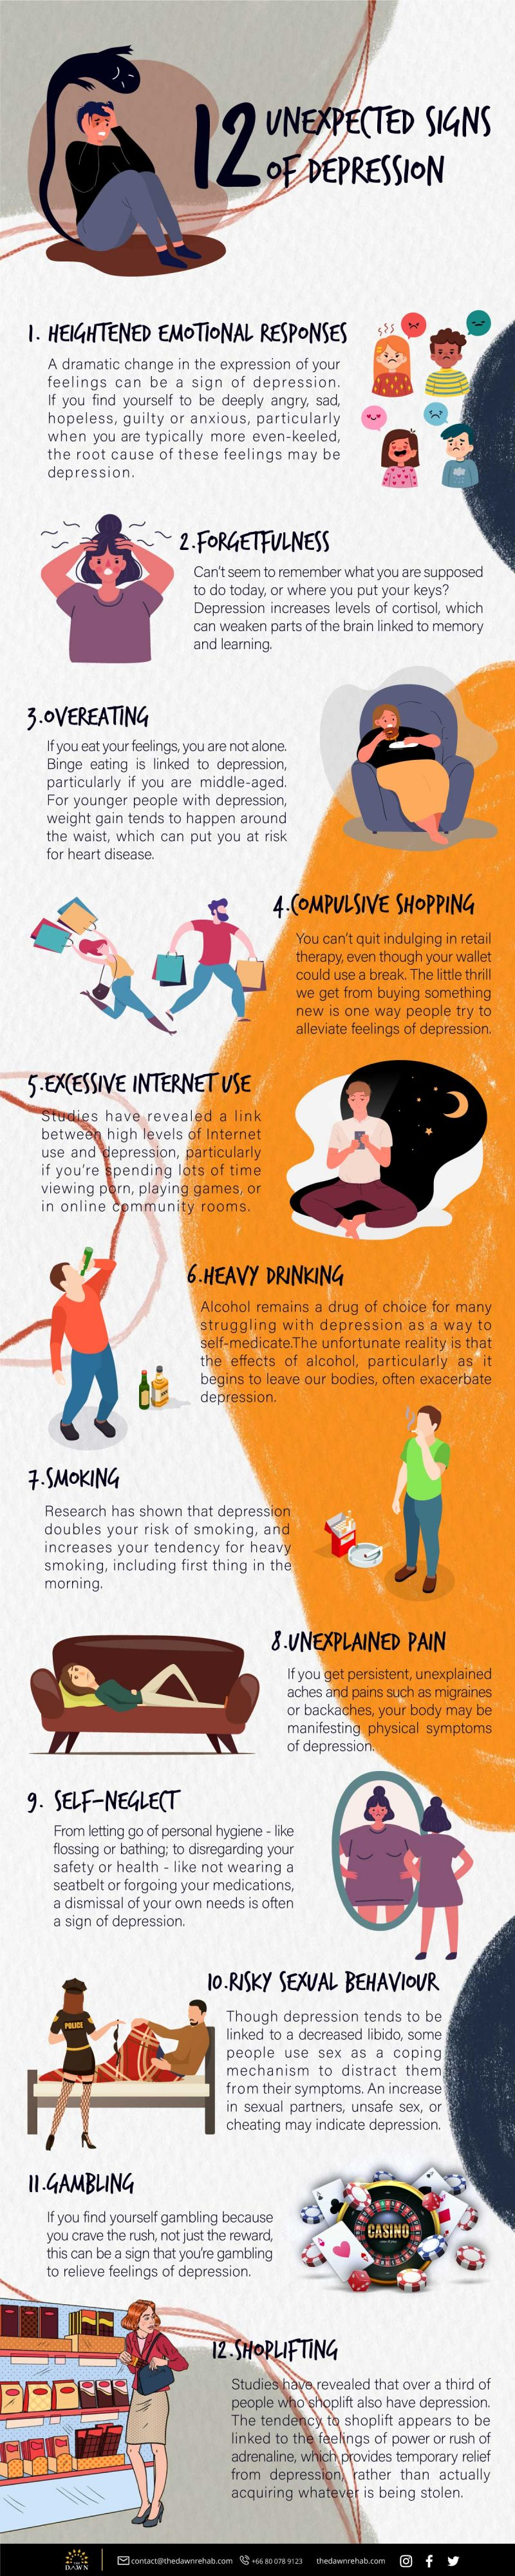 12 Unexpected Signs of Depression infographic